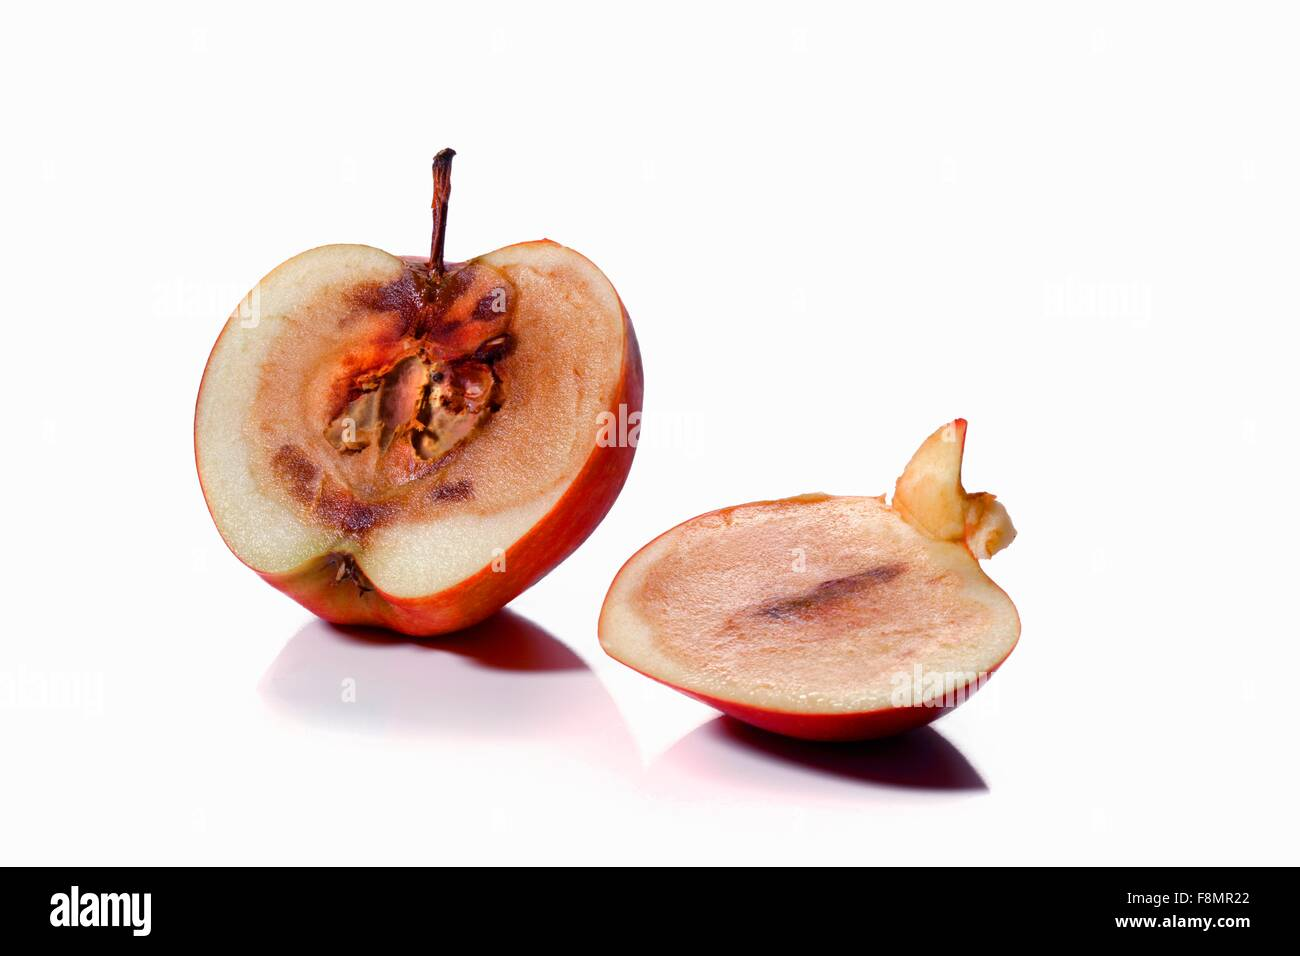 A mouldy apple, sliced - Stock Image